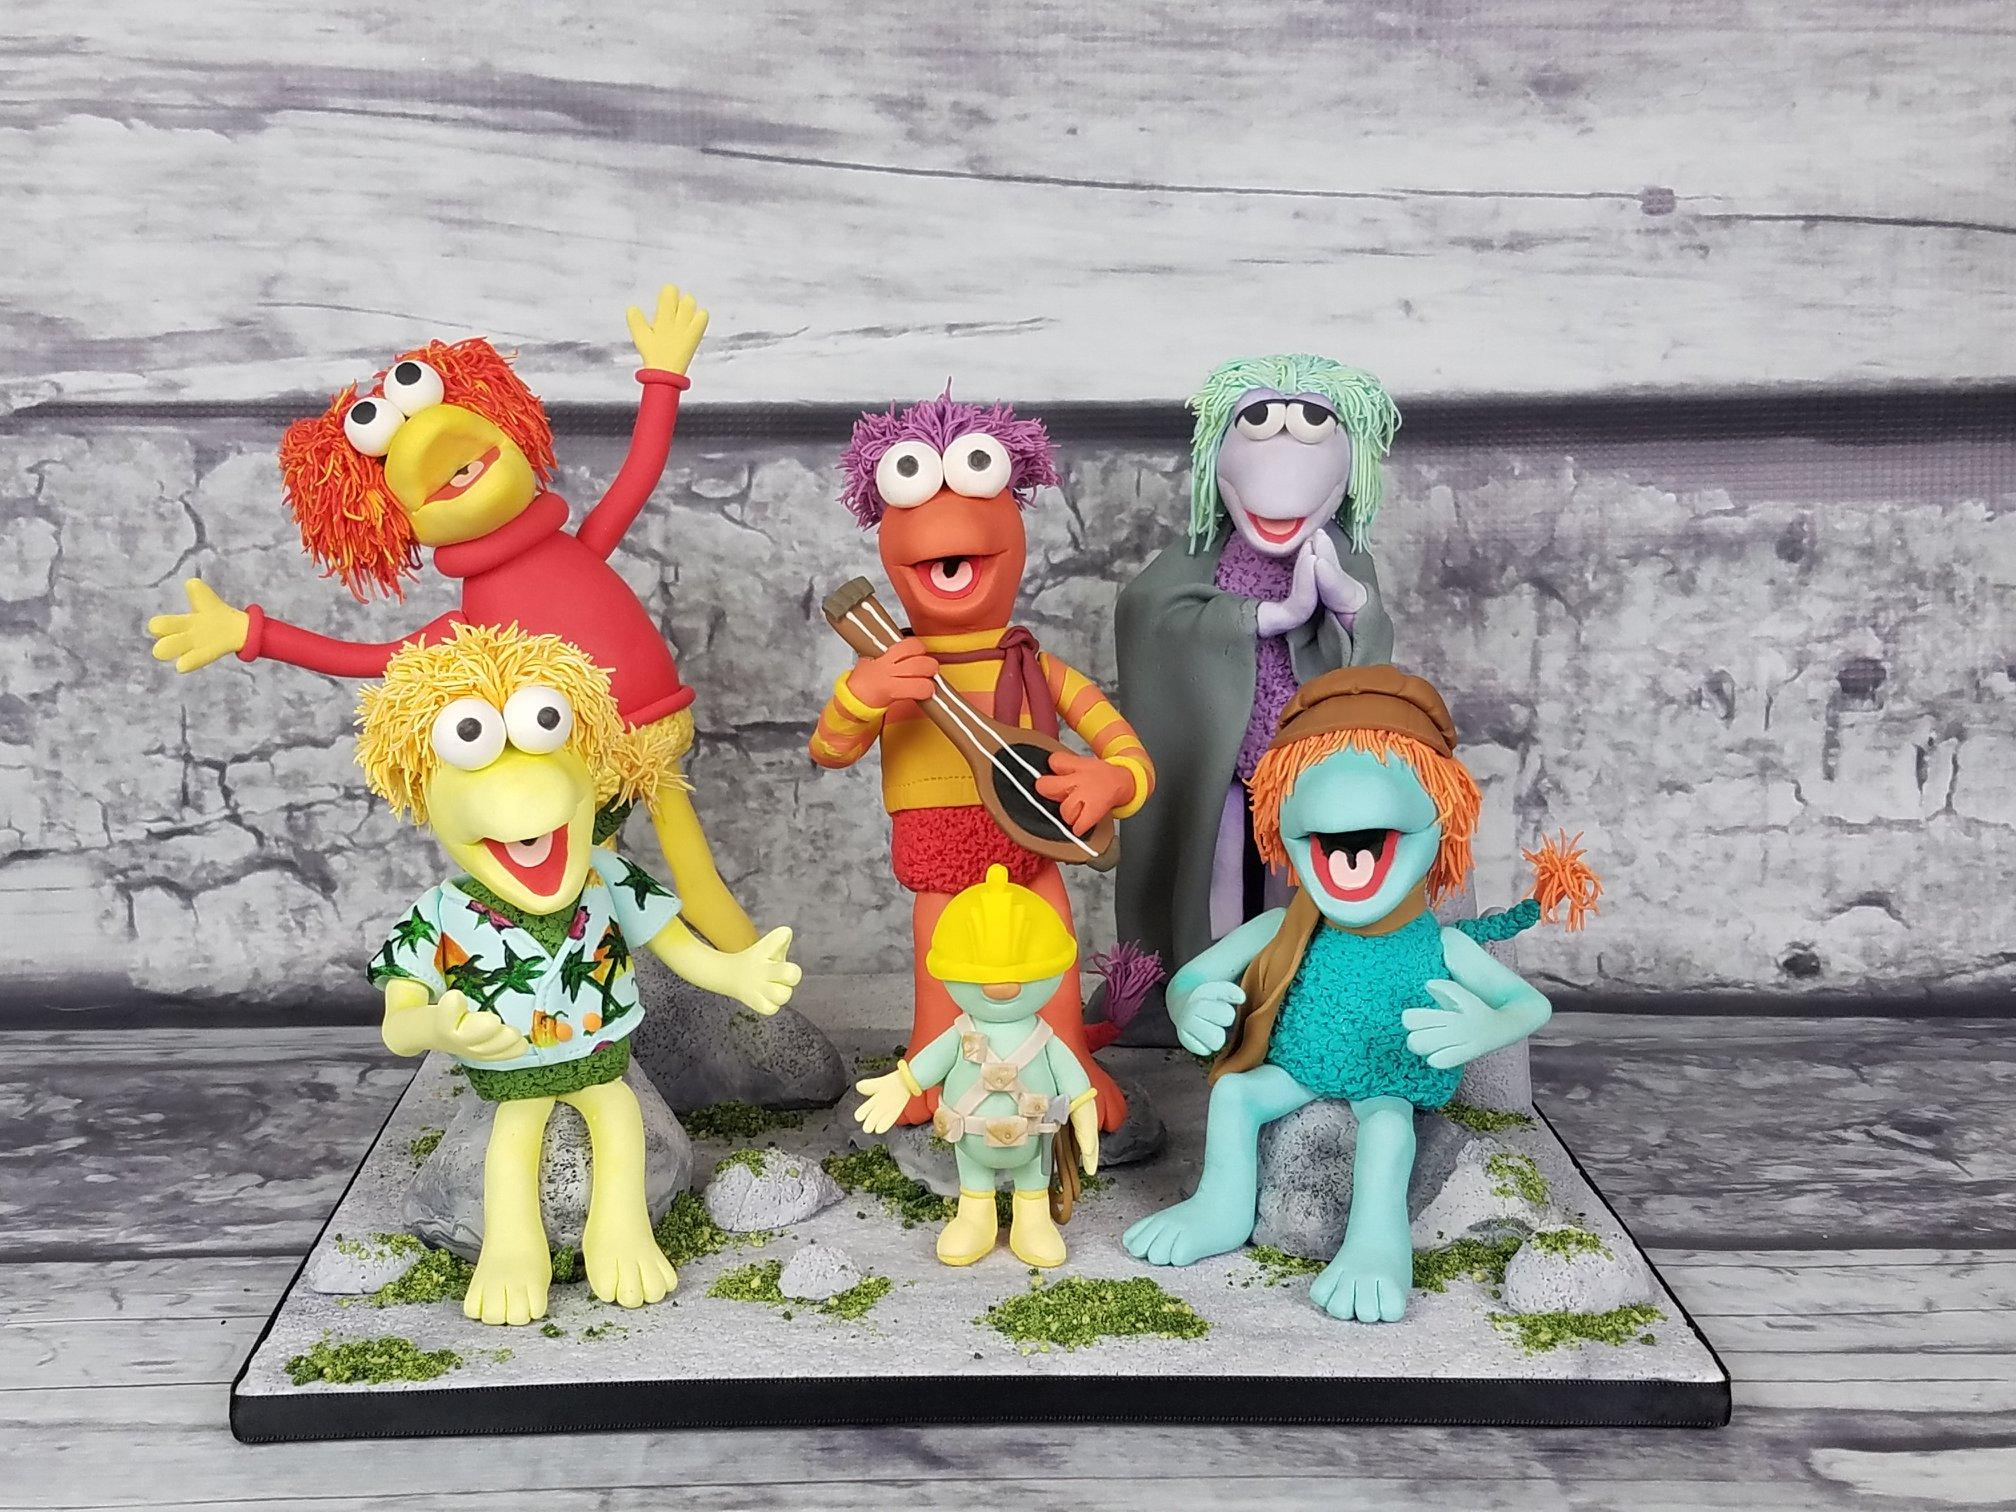 Fraggle Rock figurines